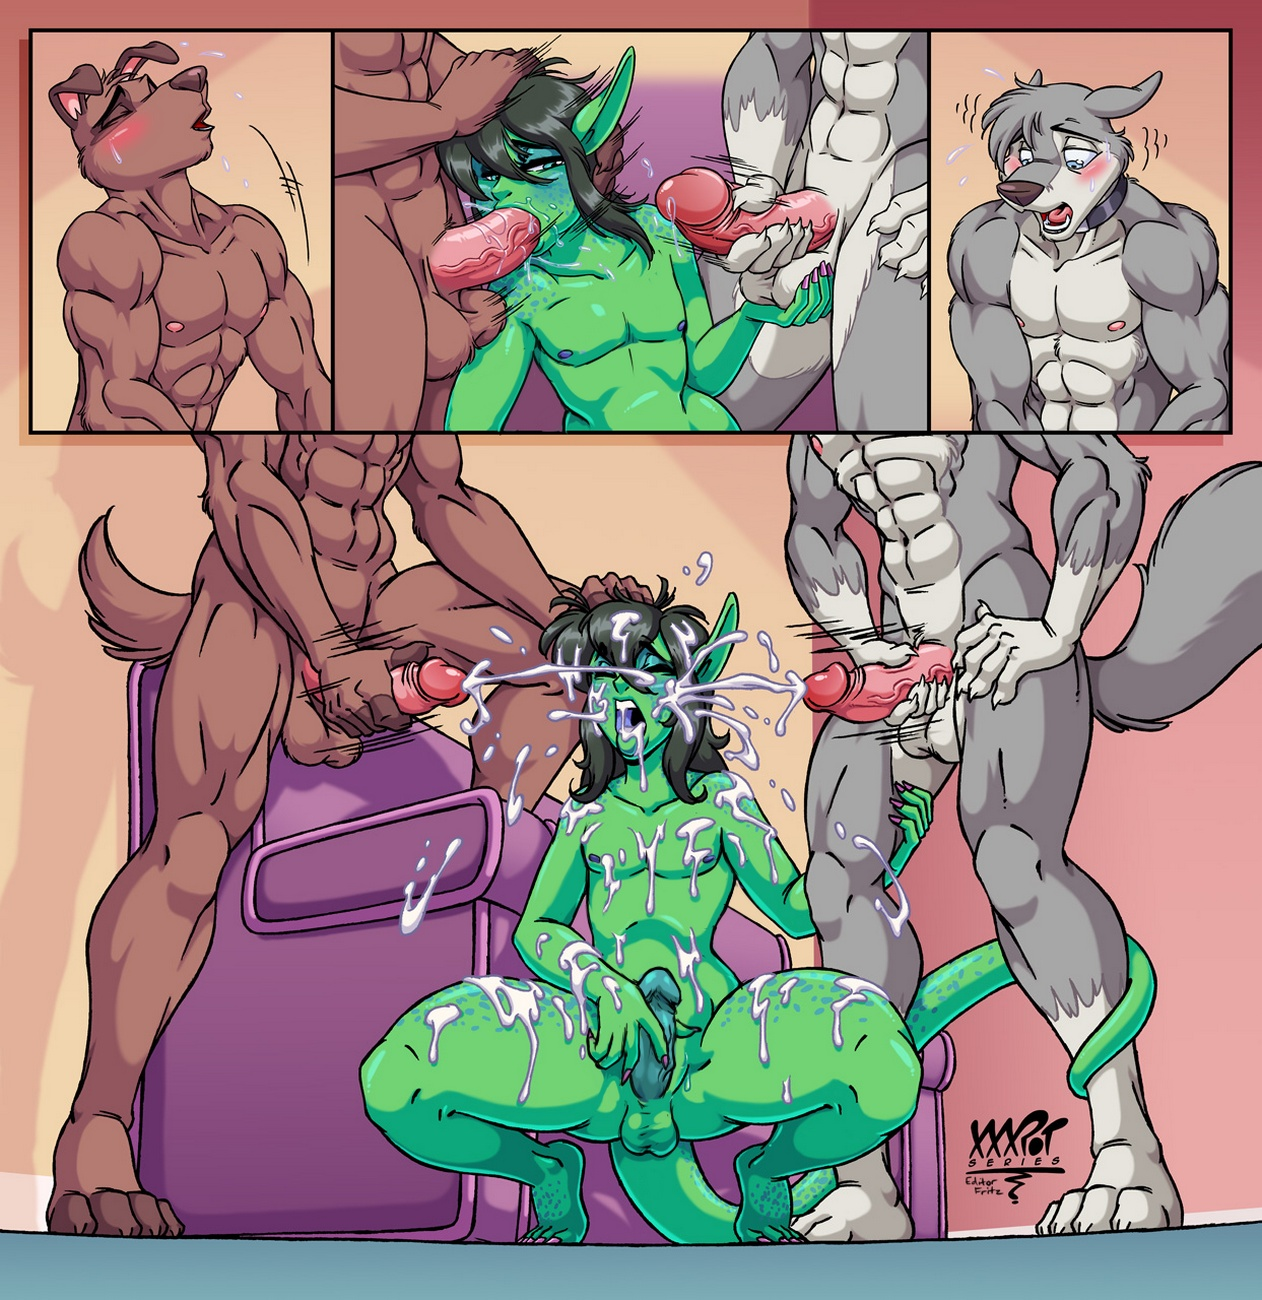 Dog Day Afternoon (Gay) gay furry comic